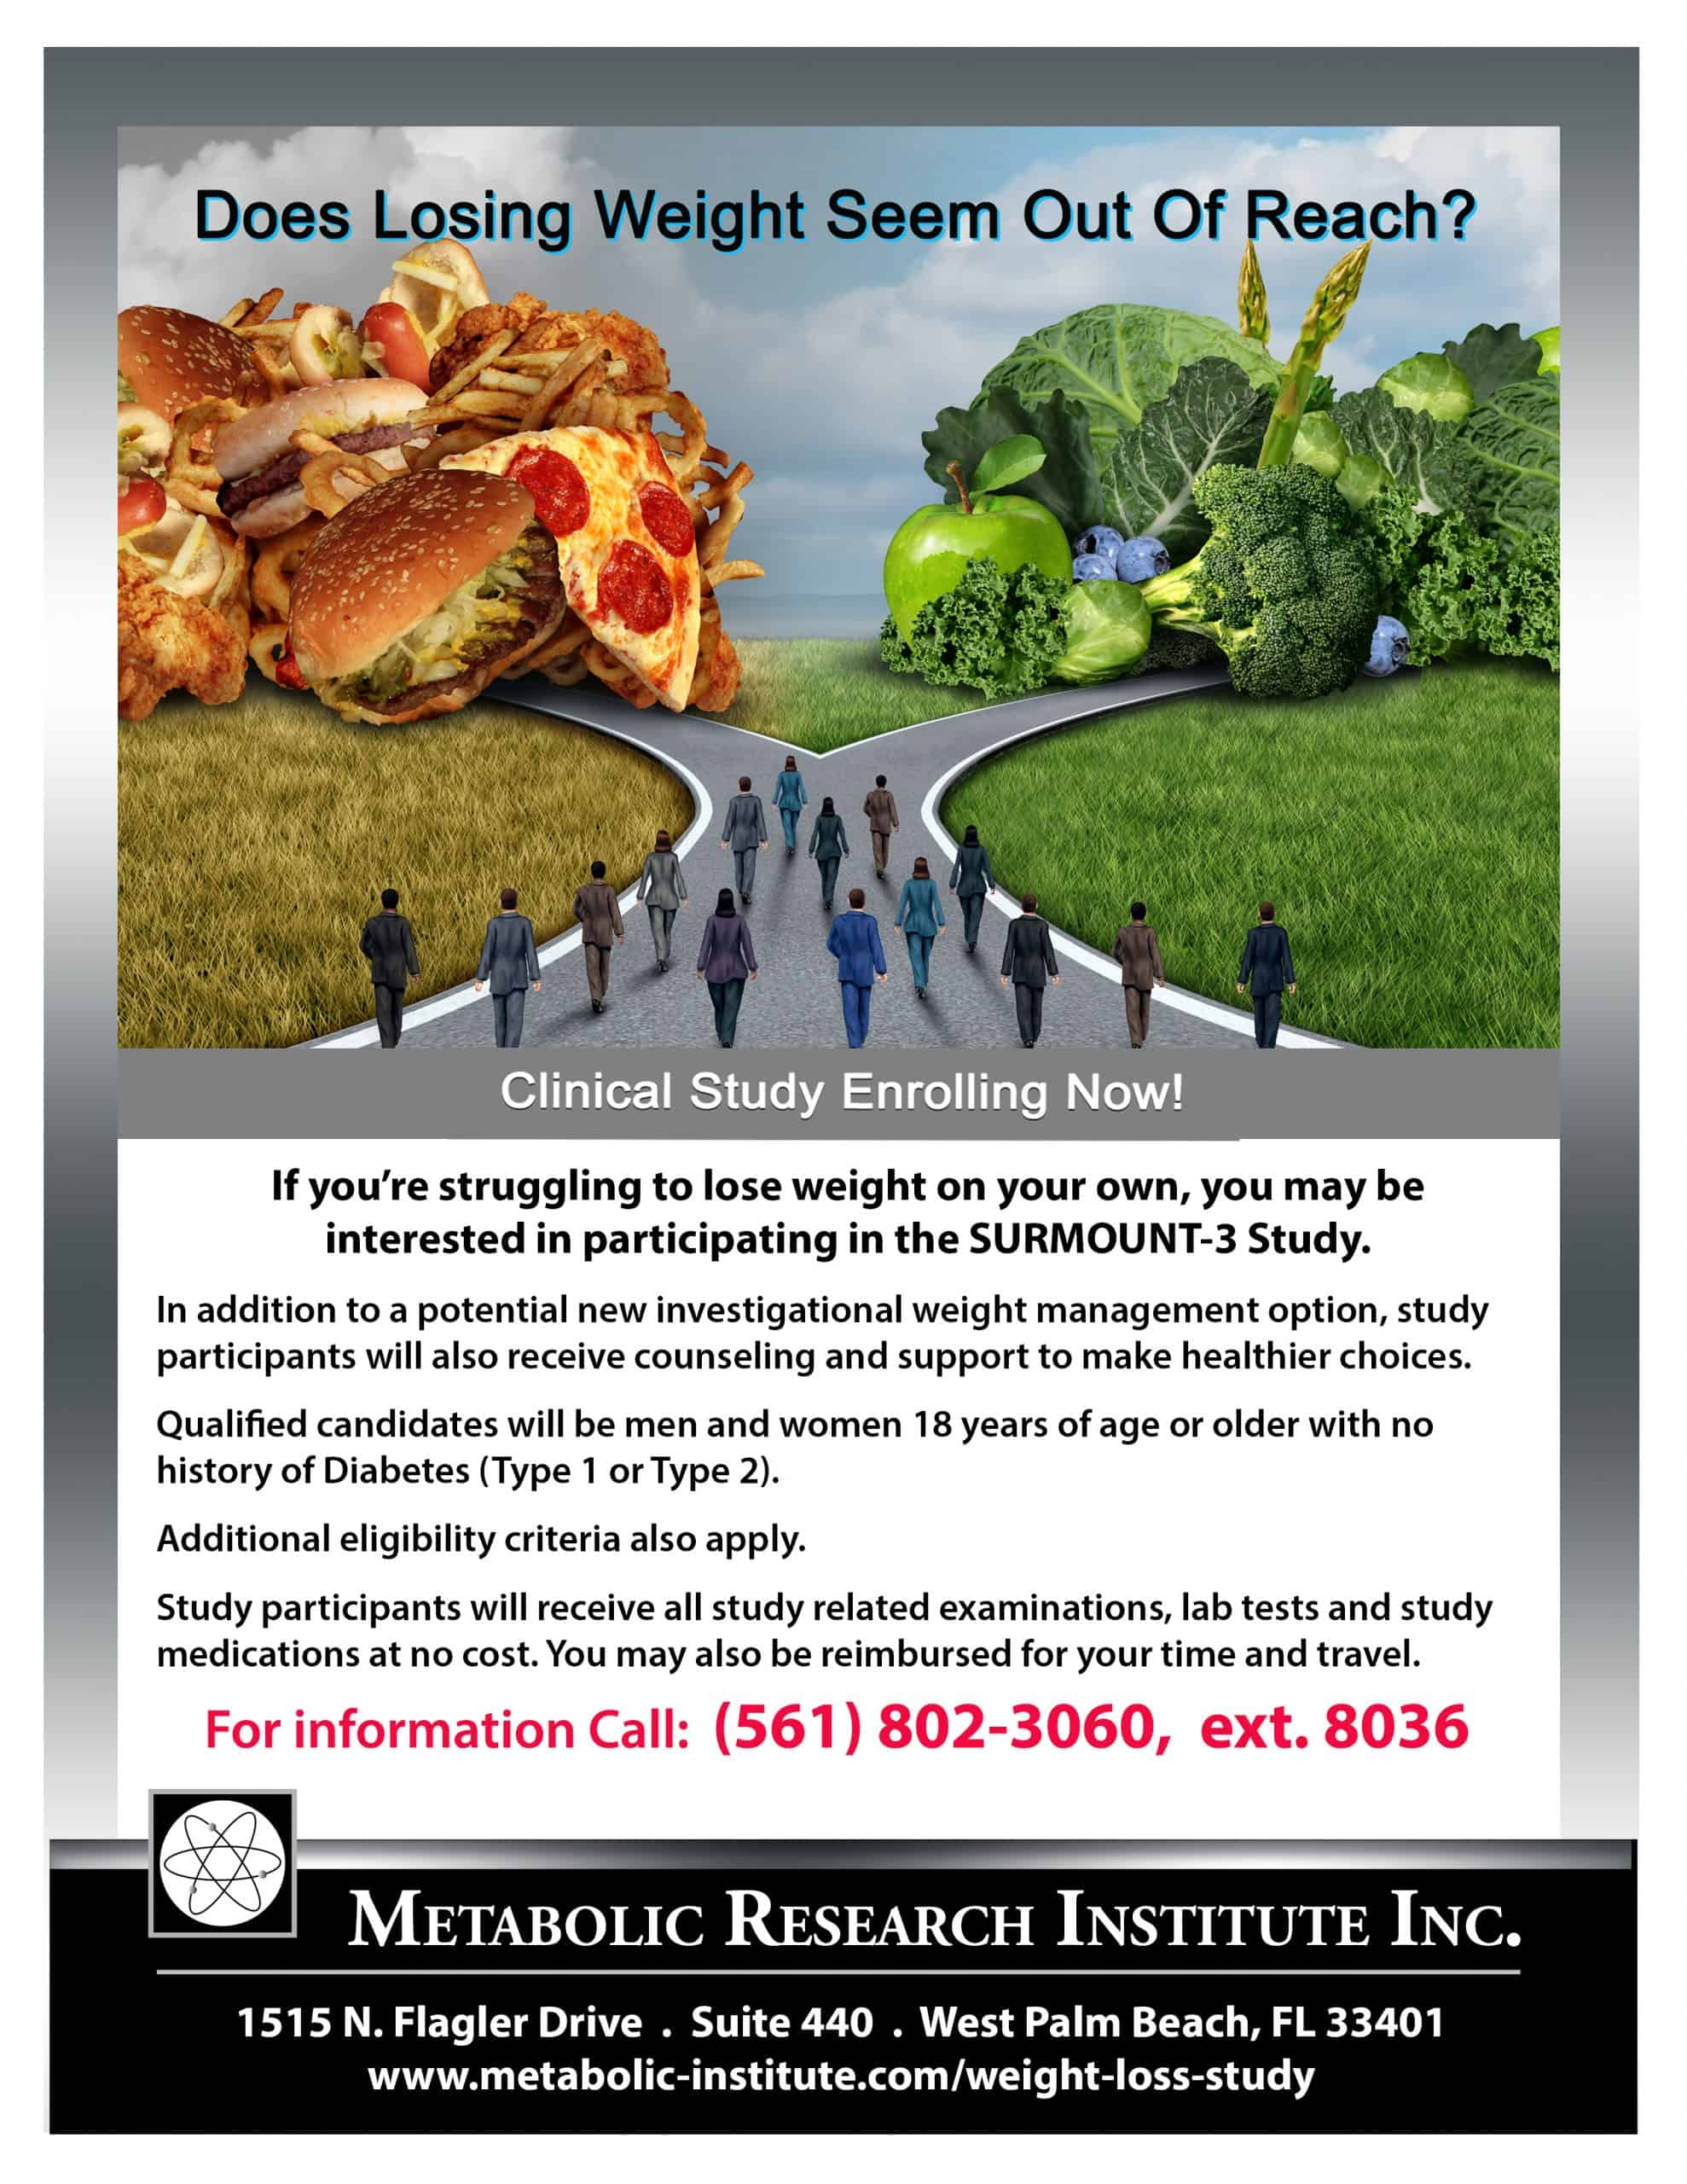 Weight Loss Study Flyer